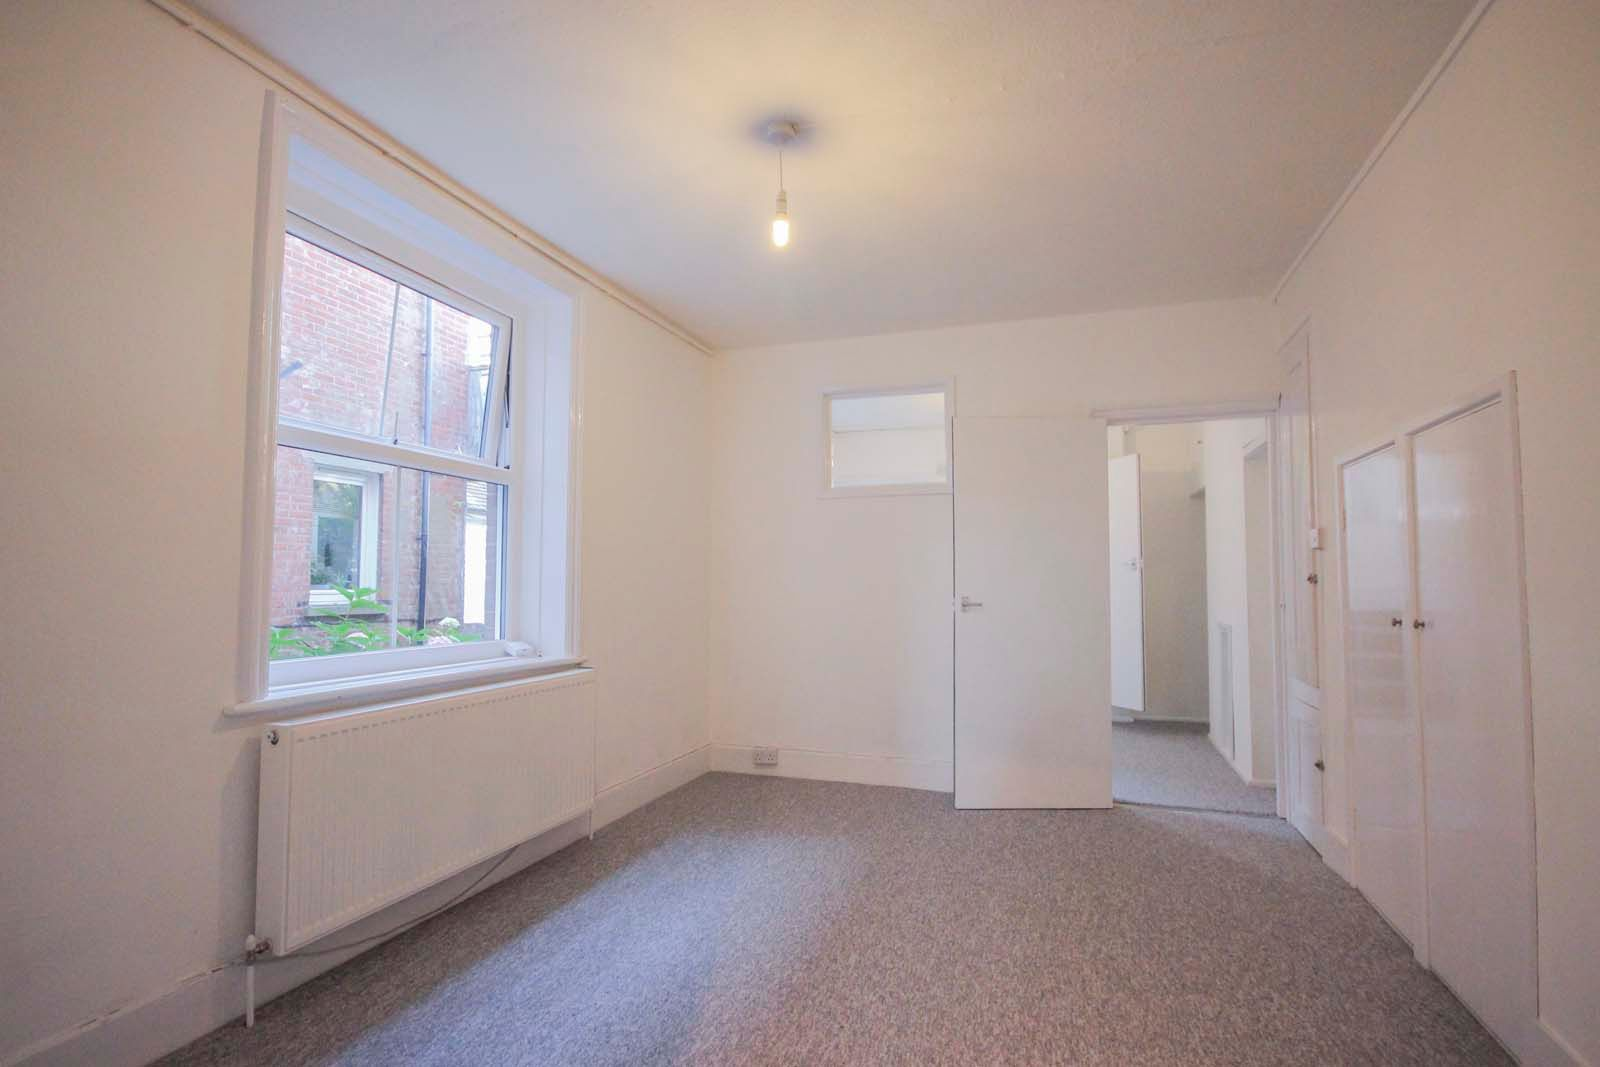 1 bed Apartment to rent in Littlehampton - Living room (Property Image 4)